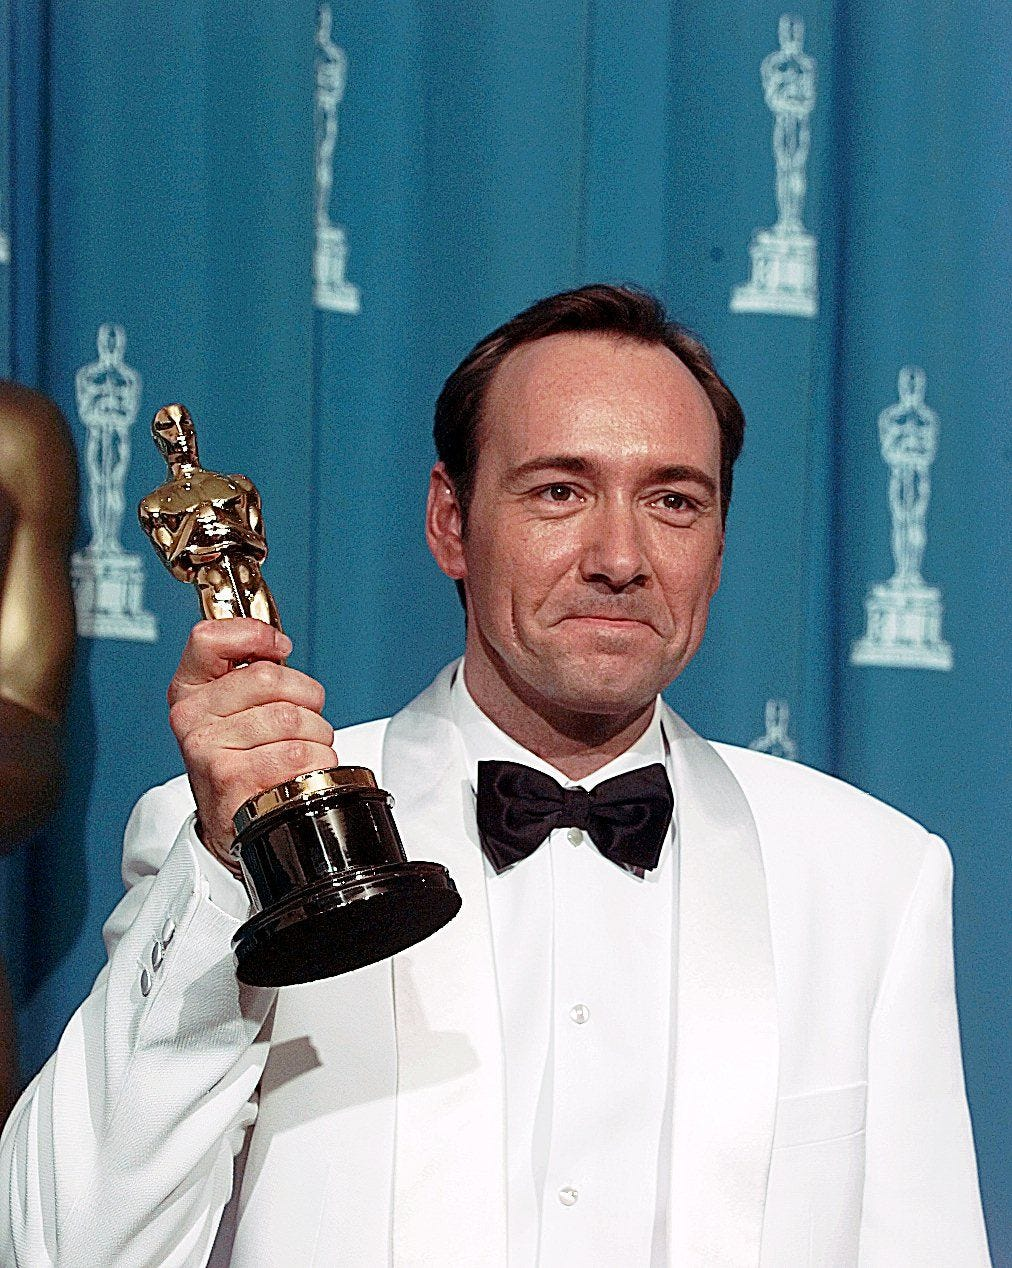 DATE TAKEN: 3/25/1896---Kevin Spacey holds his Oscar